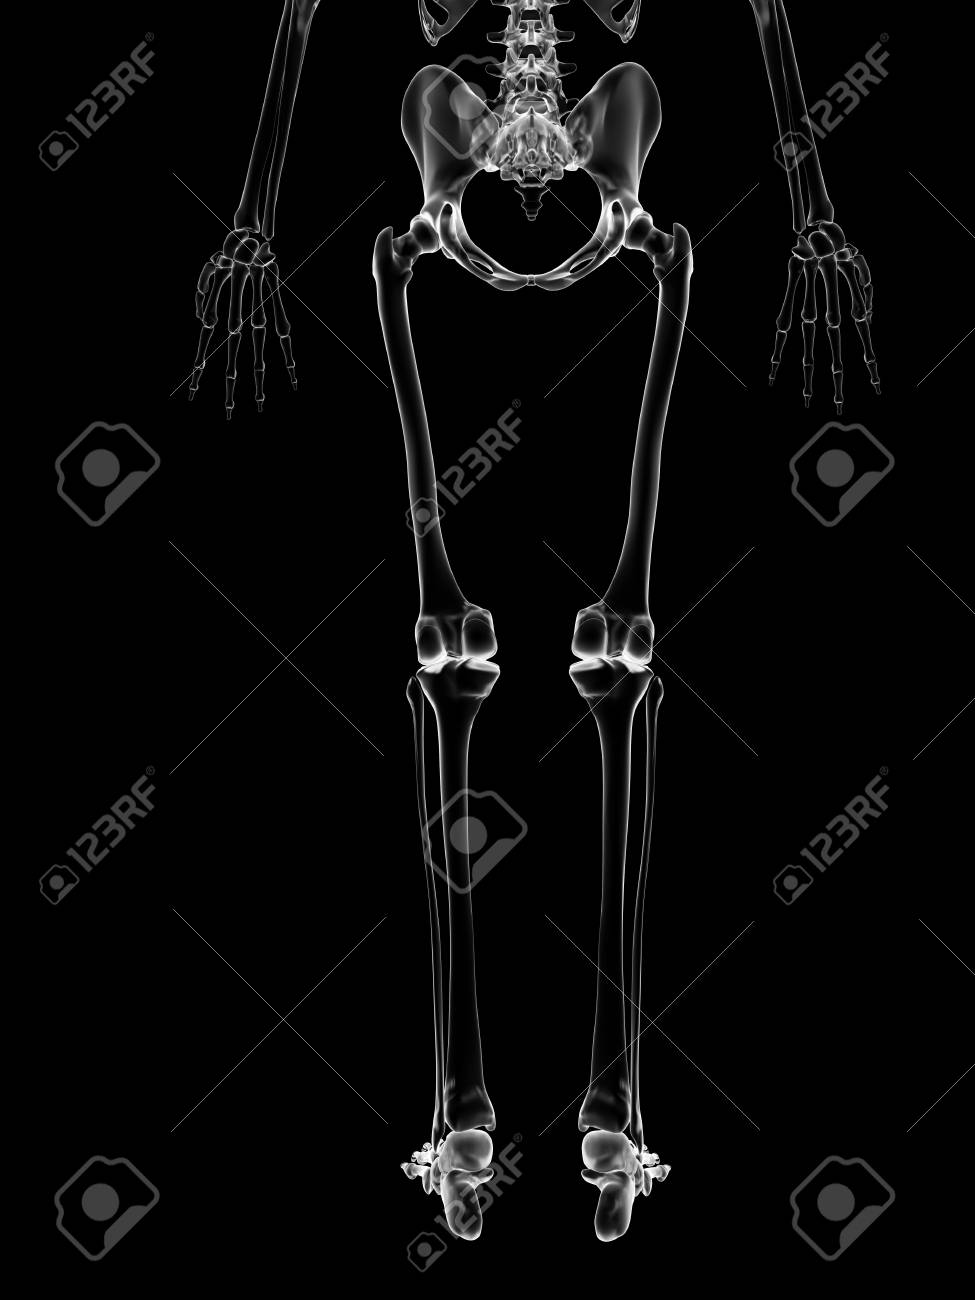 Human Leg Bones Illustration Stock Photo Picture And Royalty Free